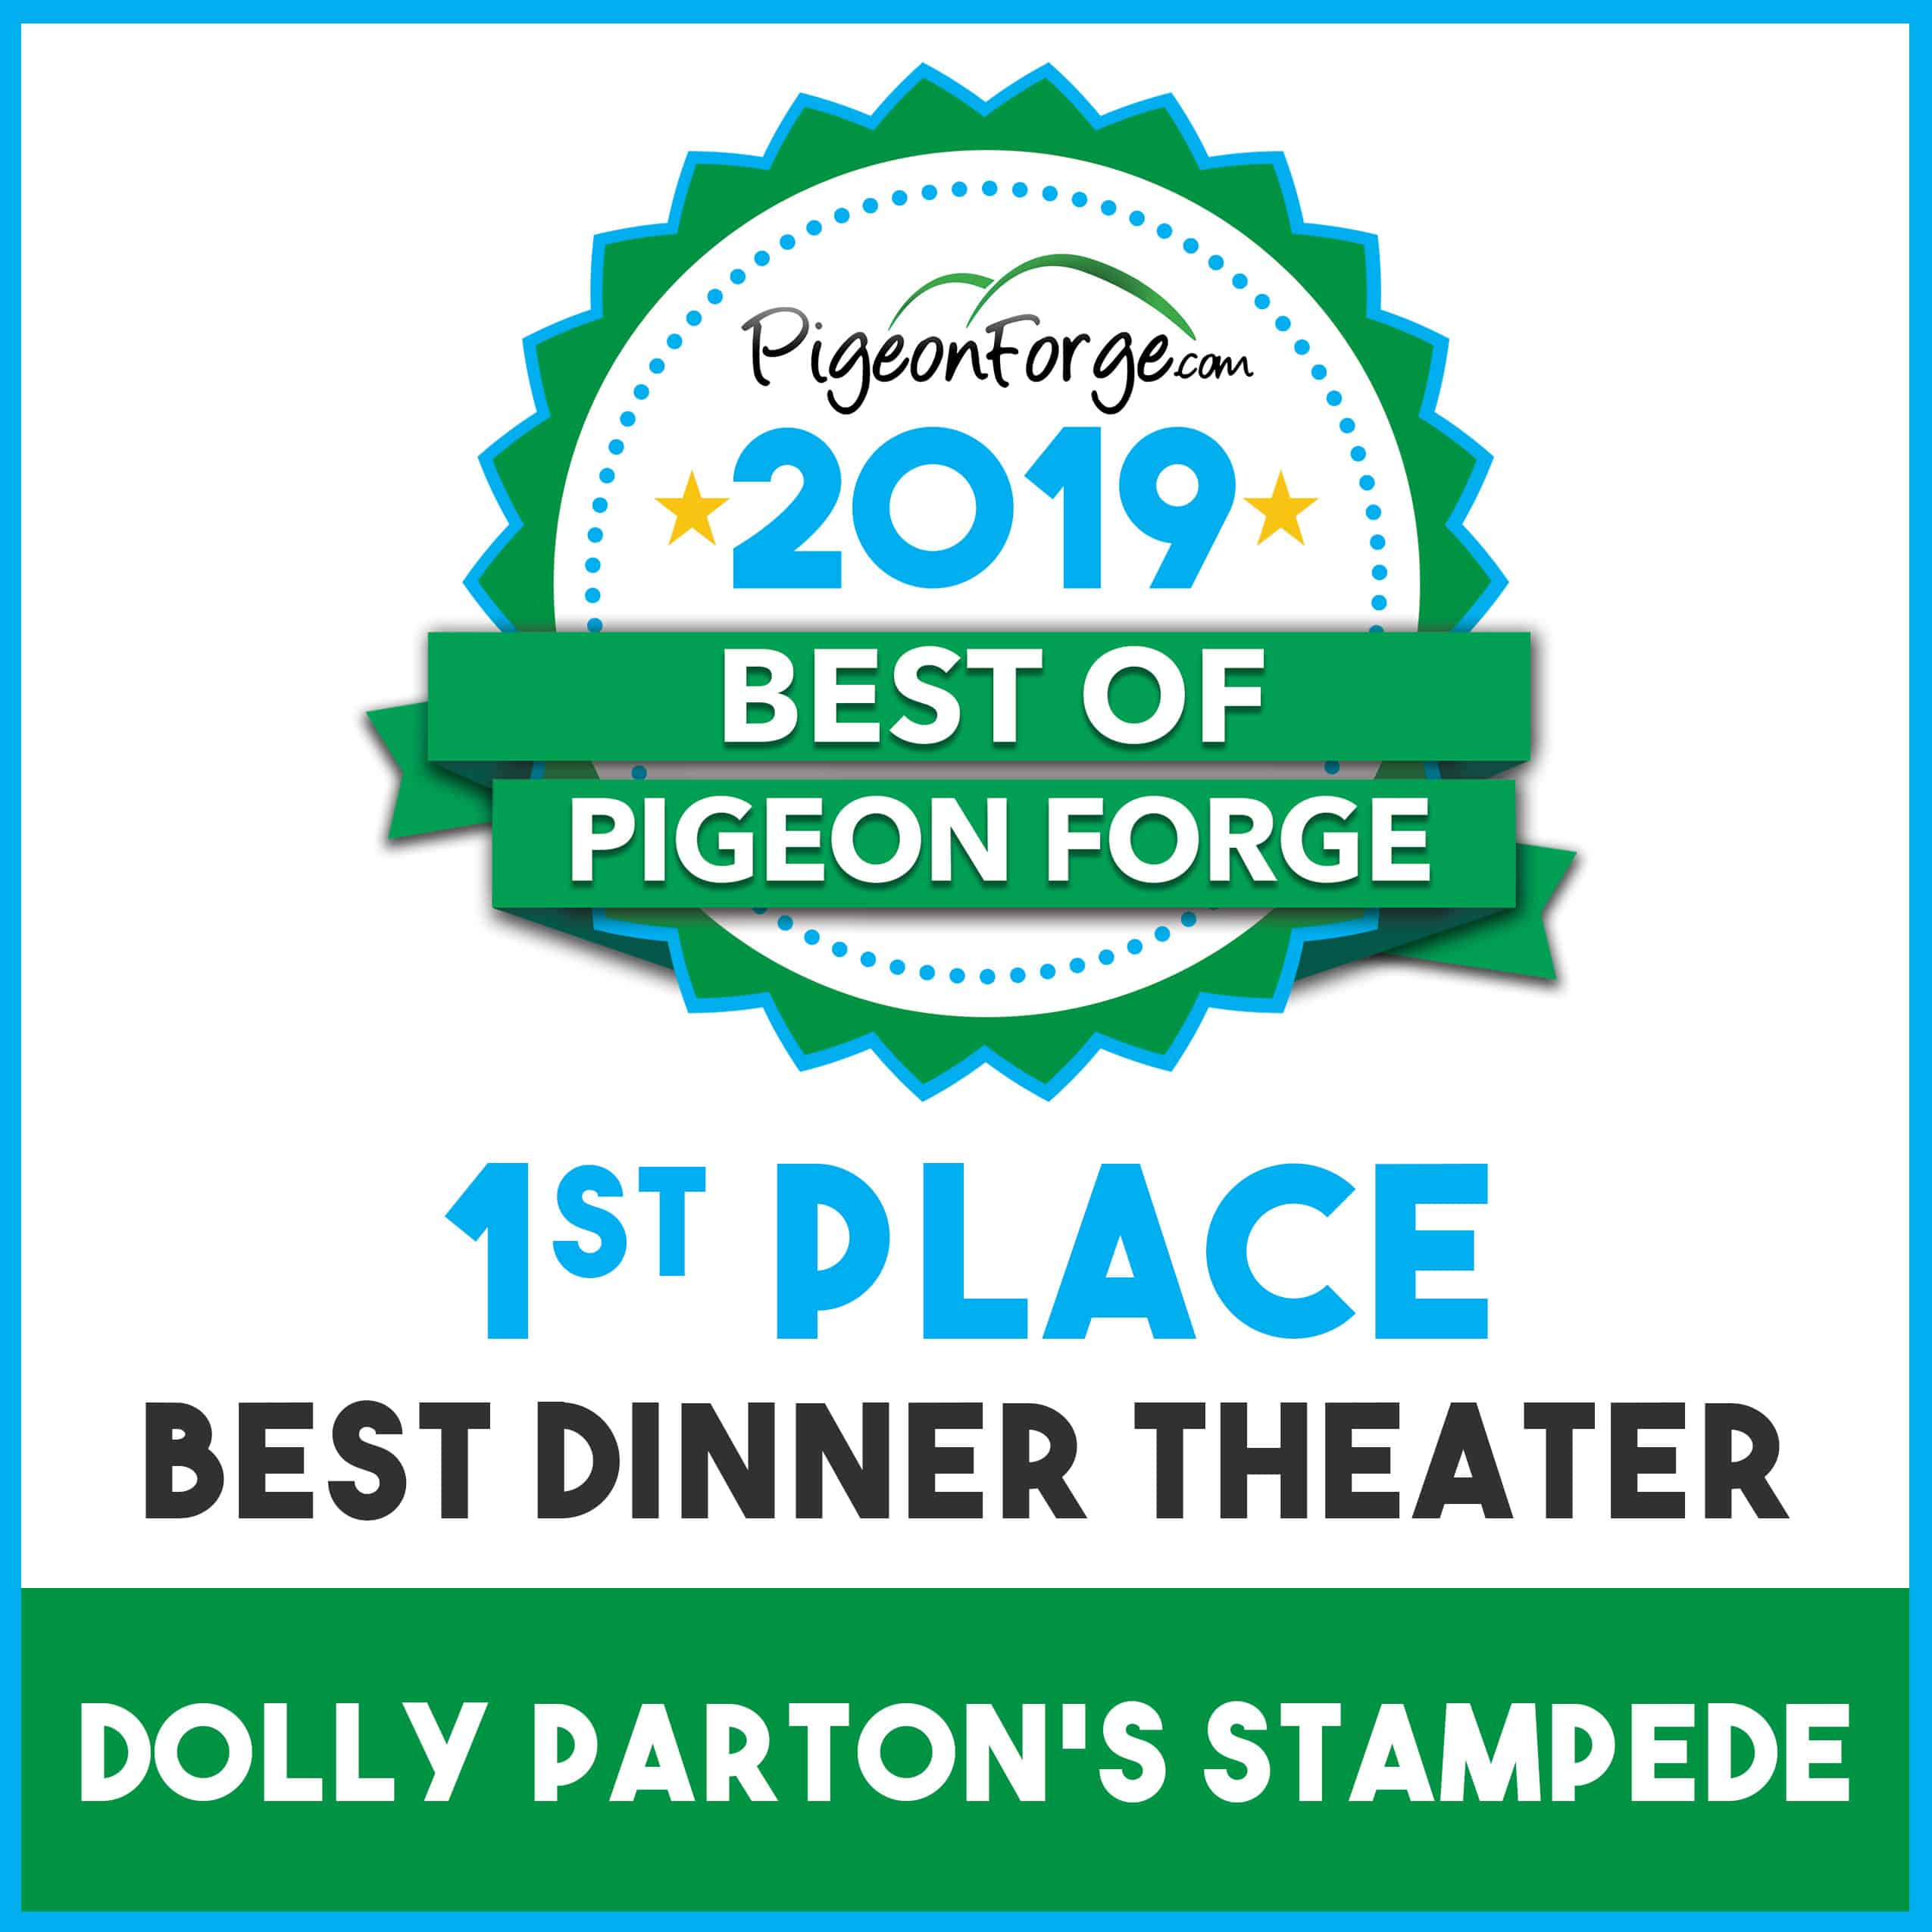 Best of Pigeon Forge - Dolly Parton's Stampede